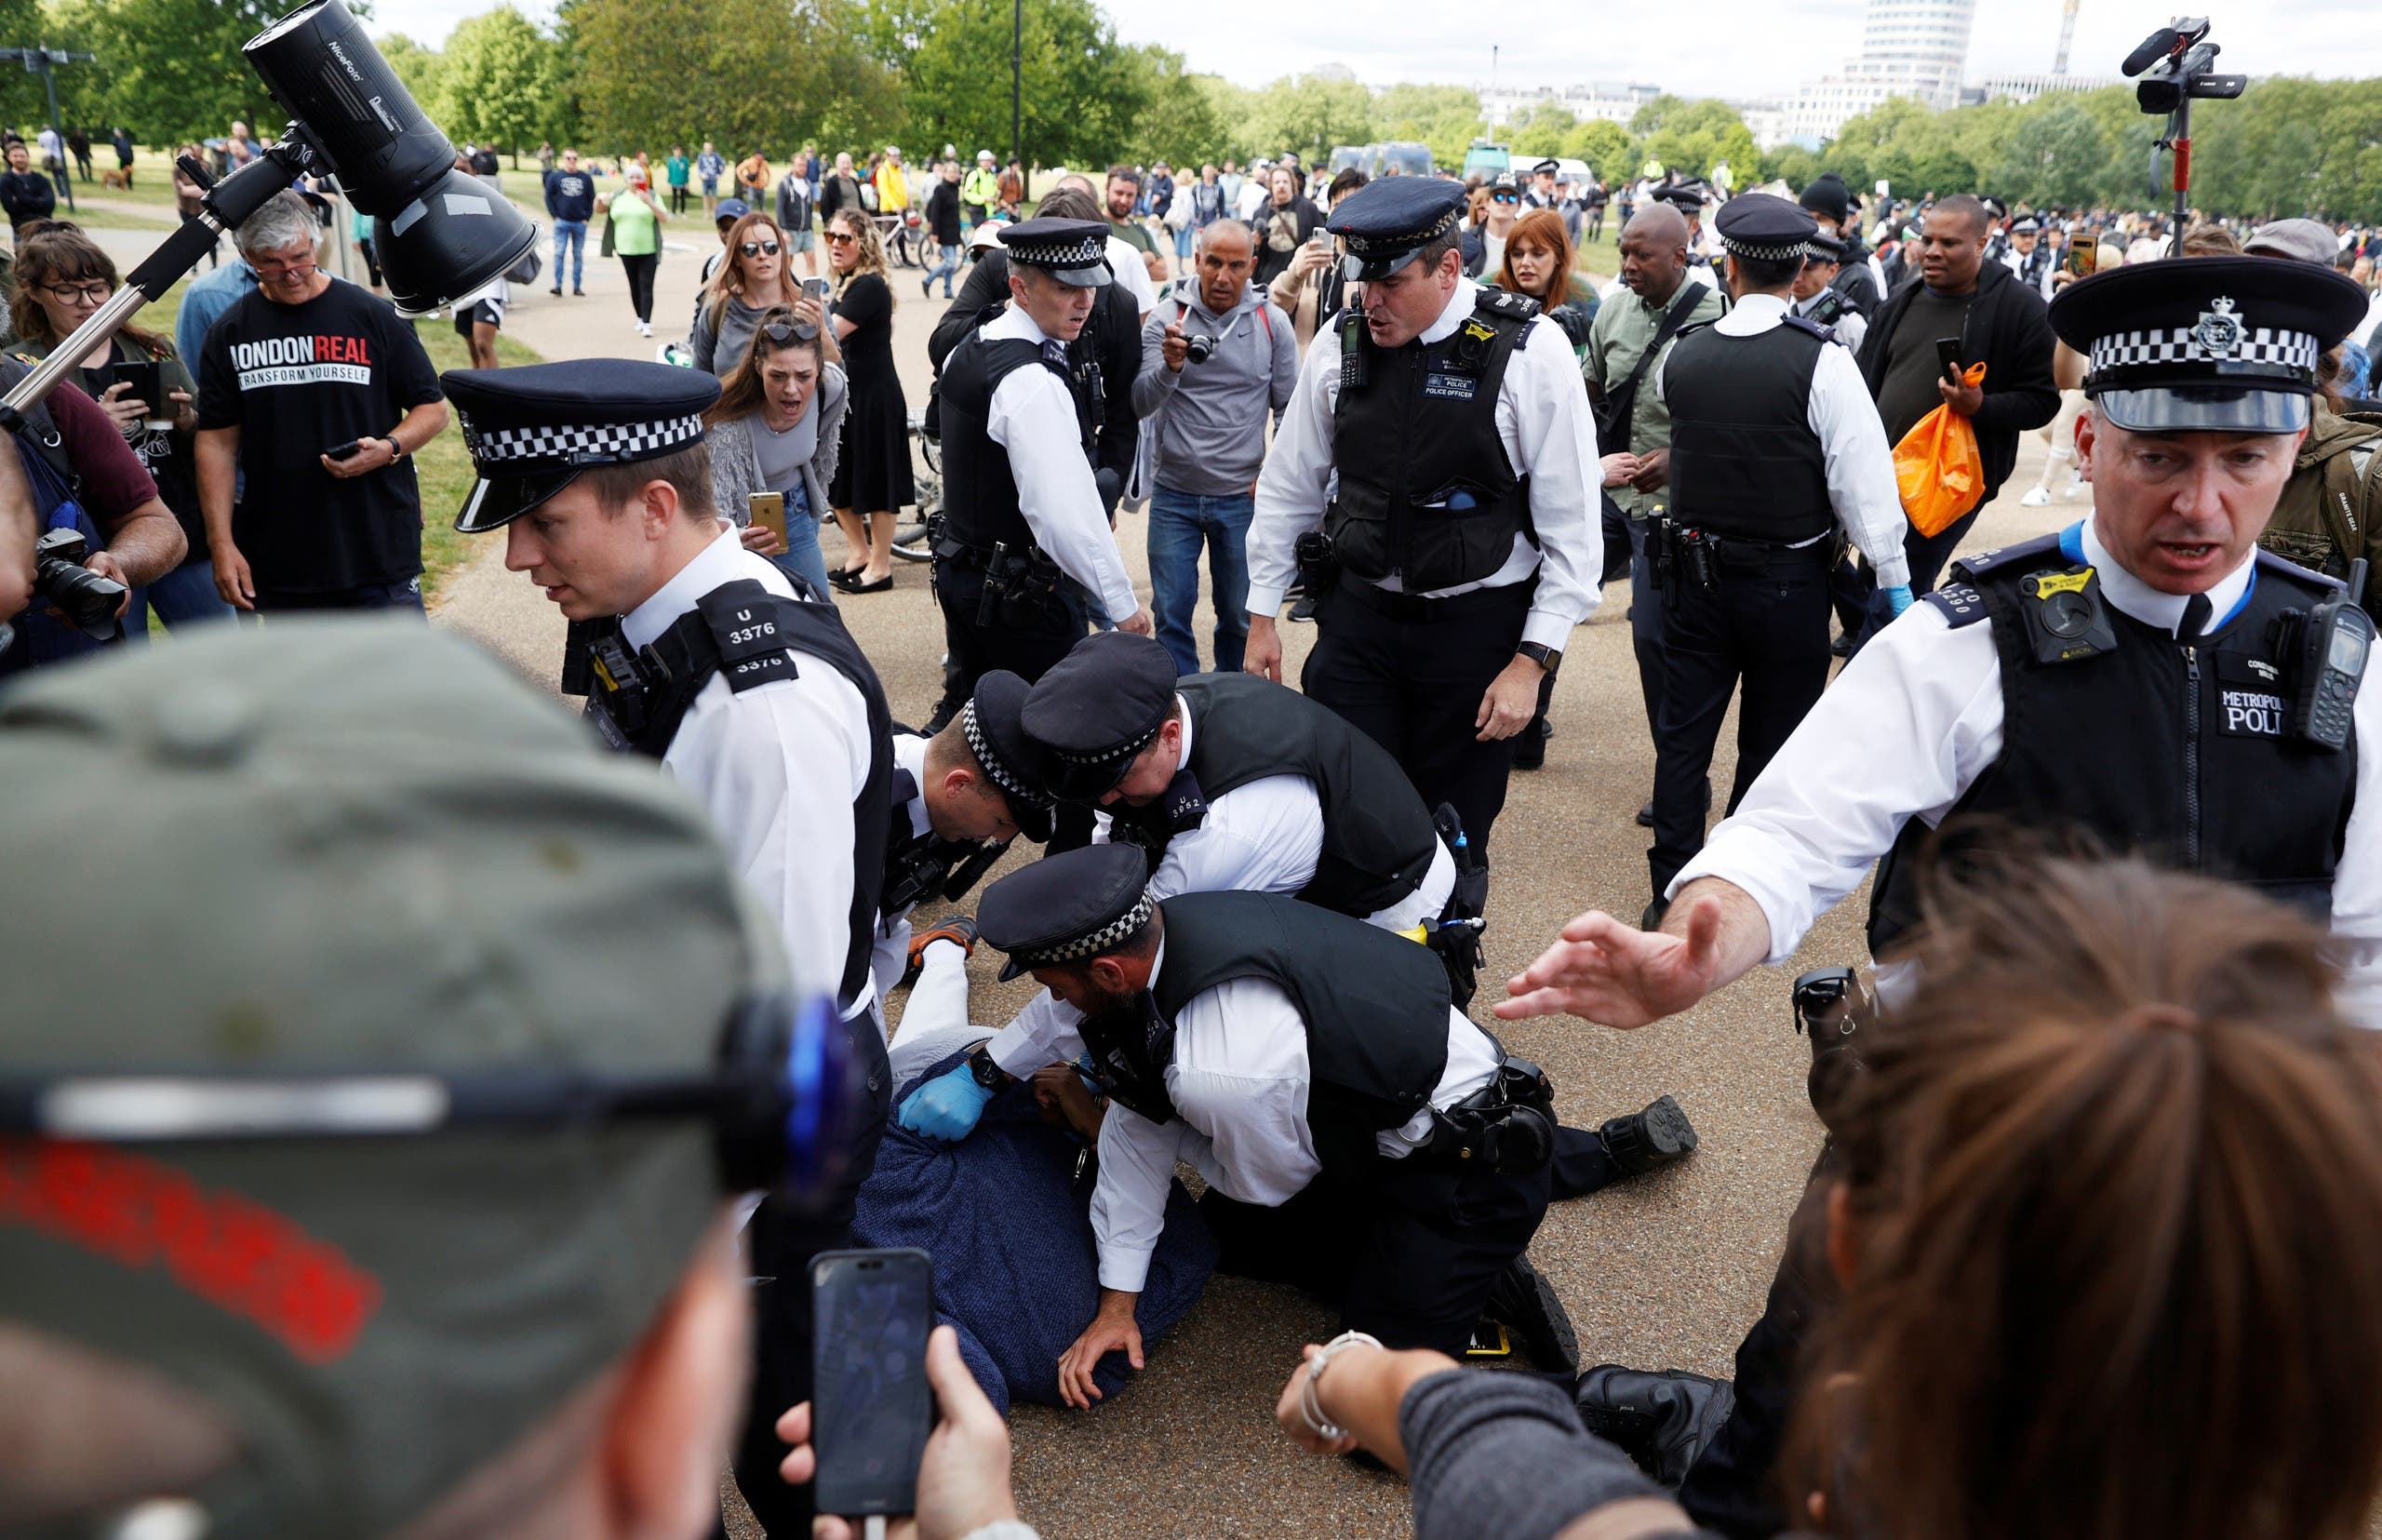 A protester is detained by police officers during a demonstration in Hyde Park, following the outbreak of the coronavirus, in London, on May 16, 2020. (Reuters)